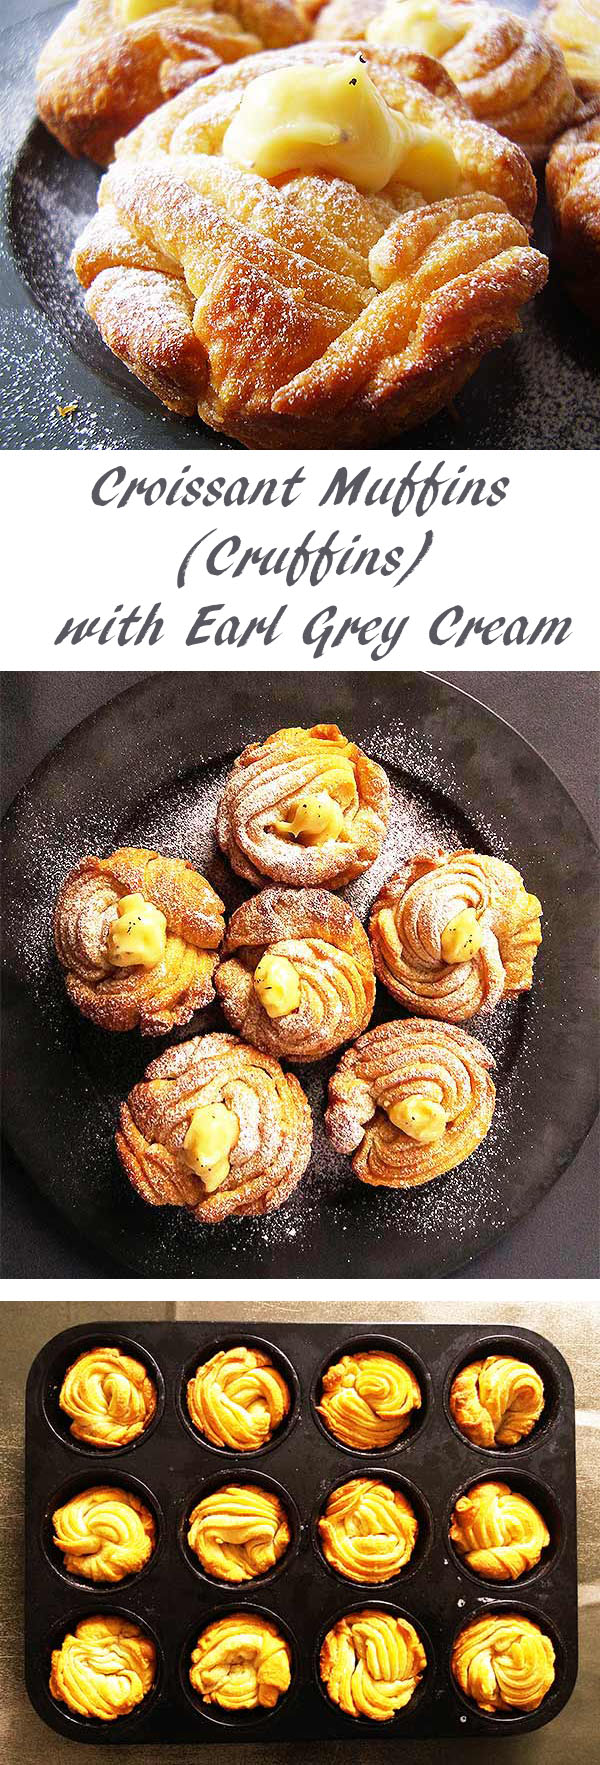 Croissant Muffins (Cruffins) with Earl Grey Cream : Successful project of Muffin shaped Croissants with a hint of Earl Grey.